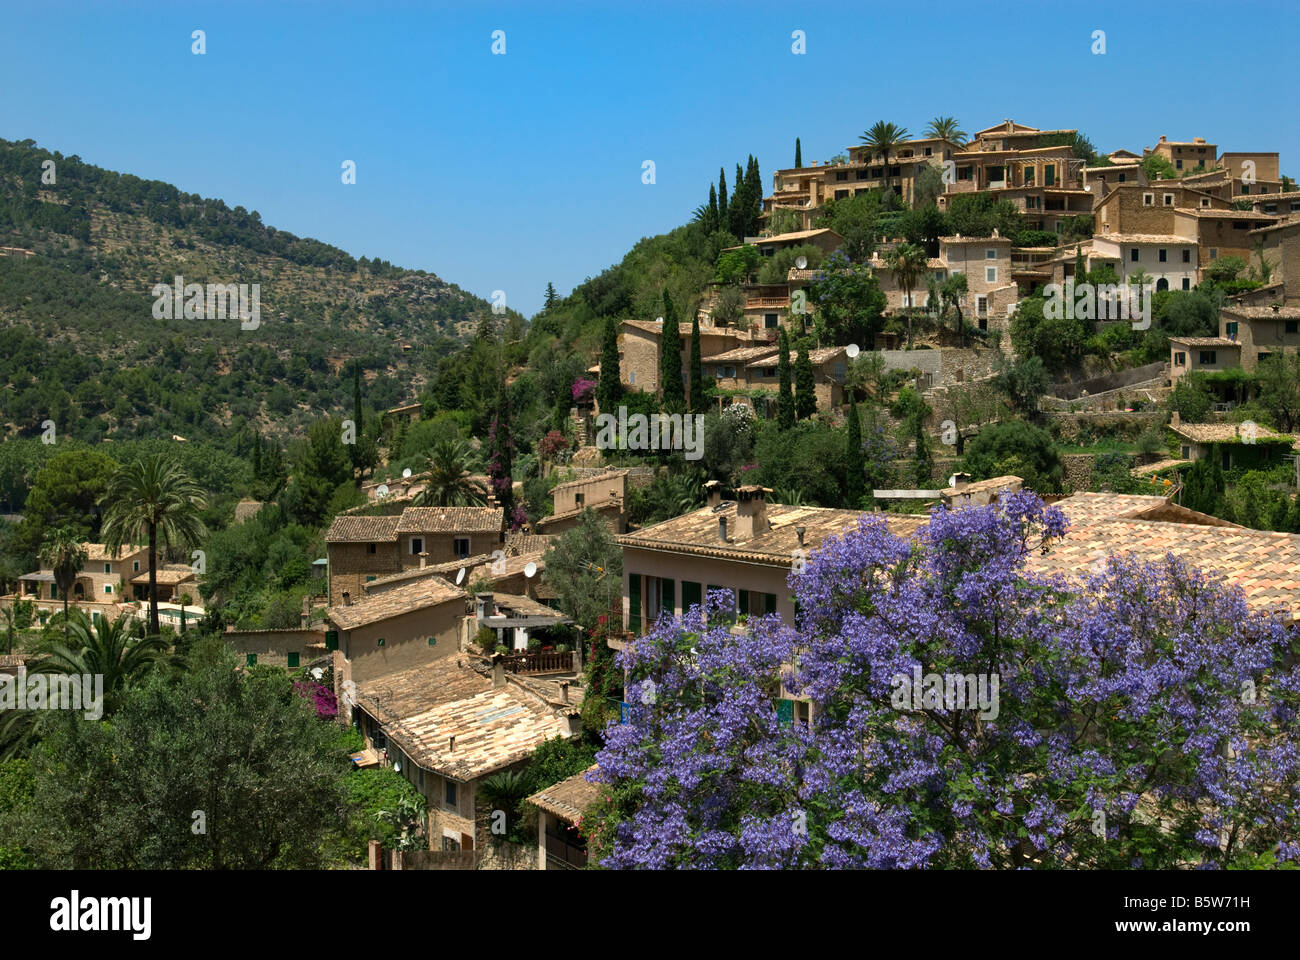 Deia with lilac tree in foreground, Mallorca, Balearics, Spain - Stock Image